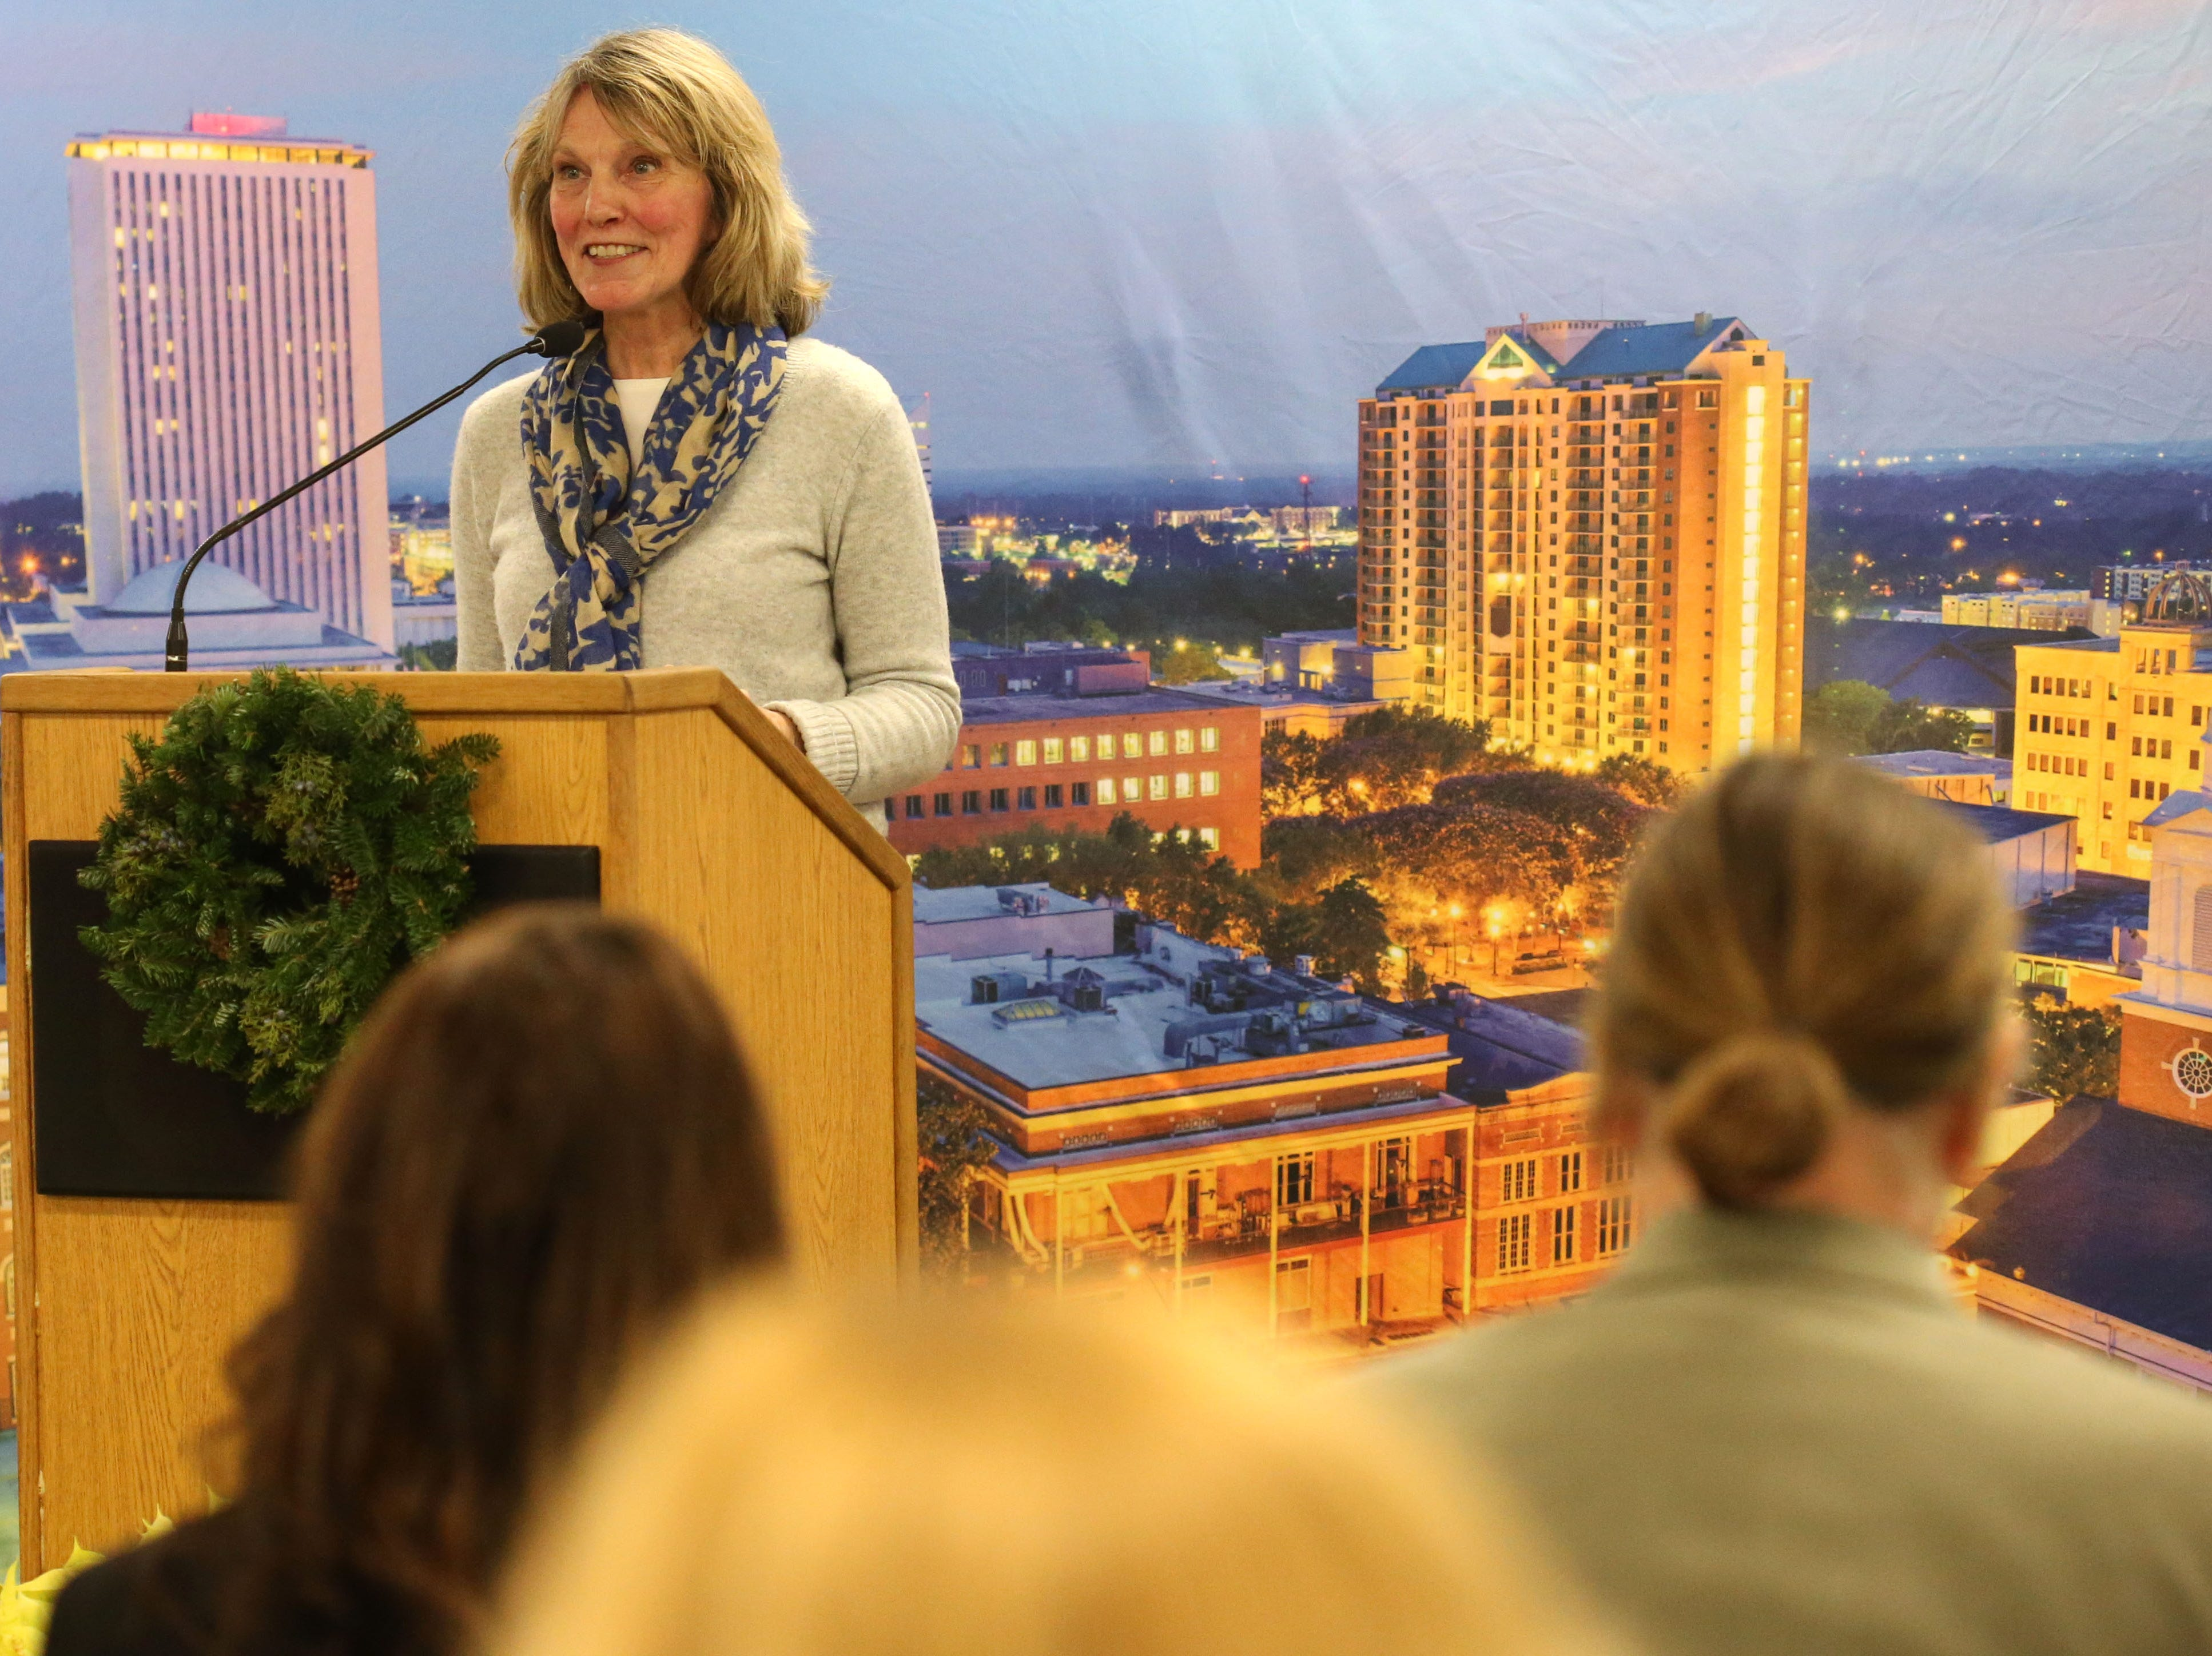 Mary Ann Lindley, Leon County Commissioner and former Tallahassee Democrat staff member, speaks at a launch party held at the Tallahassee Democrat for Gerald Ensley's book, 'We Found Paradise,' Thursday, Dec. 6, 2018.